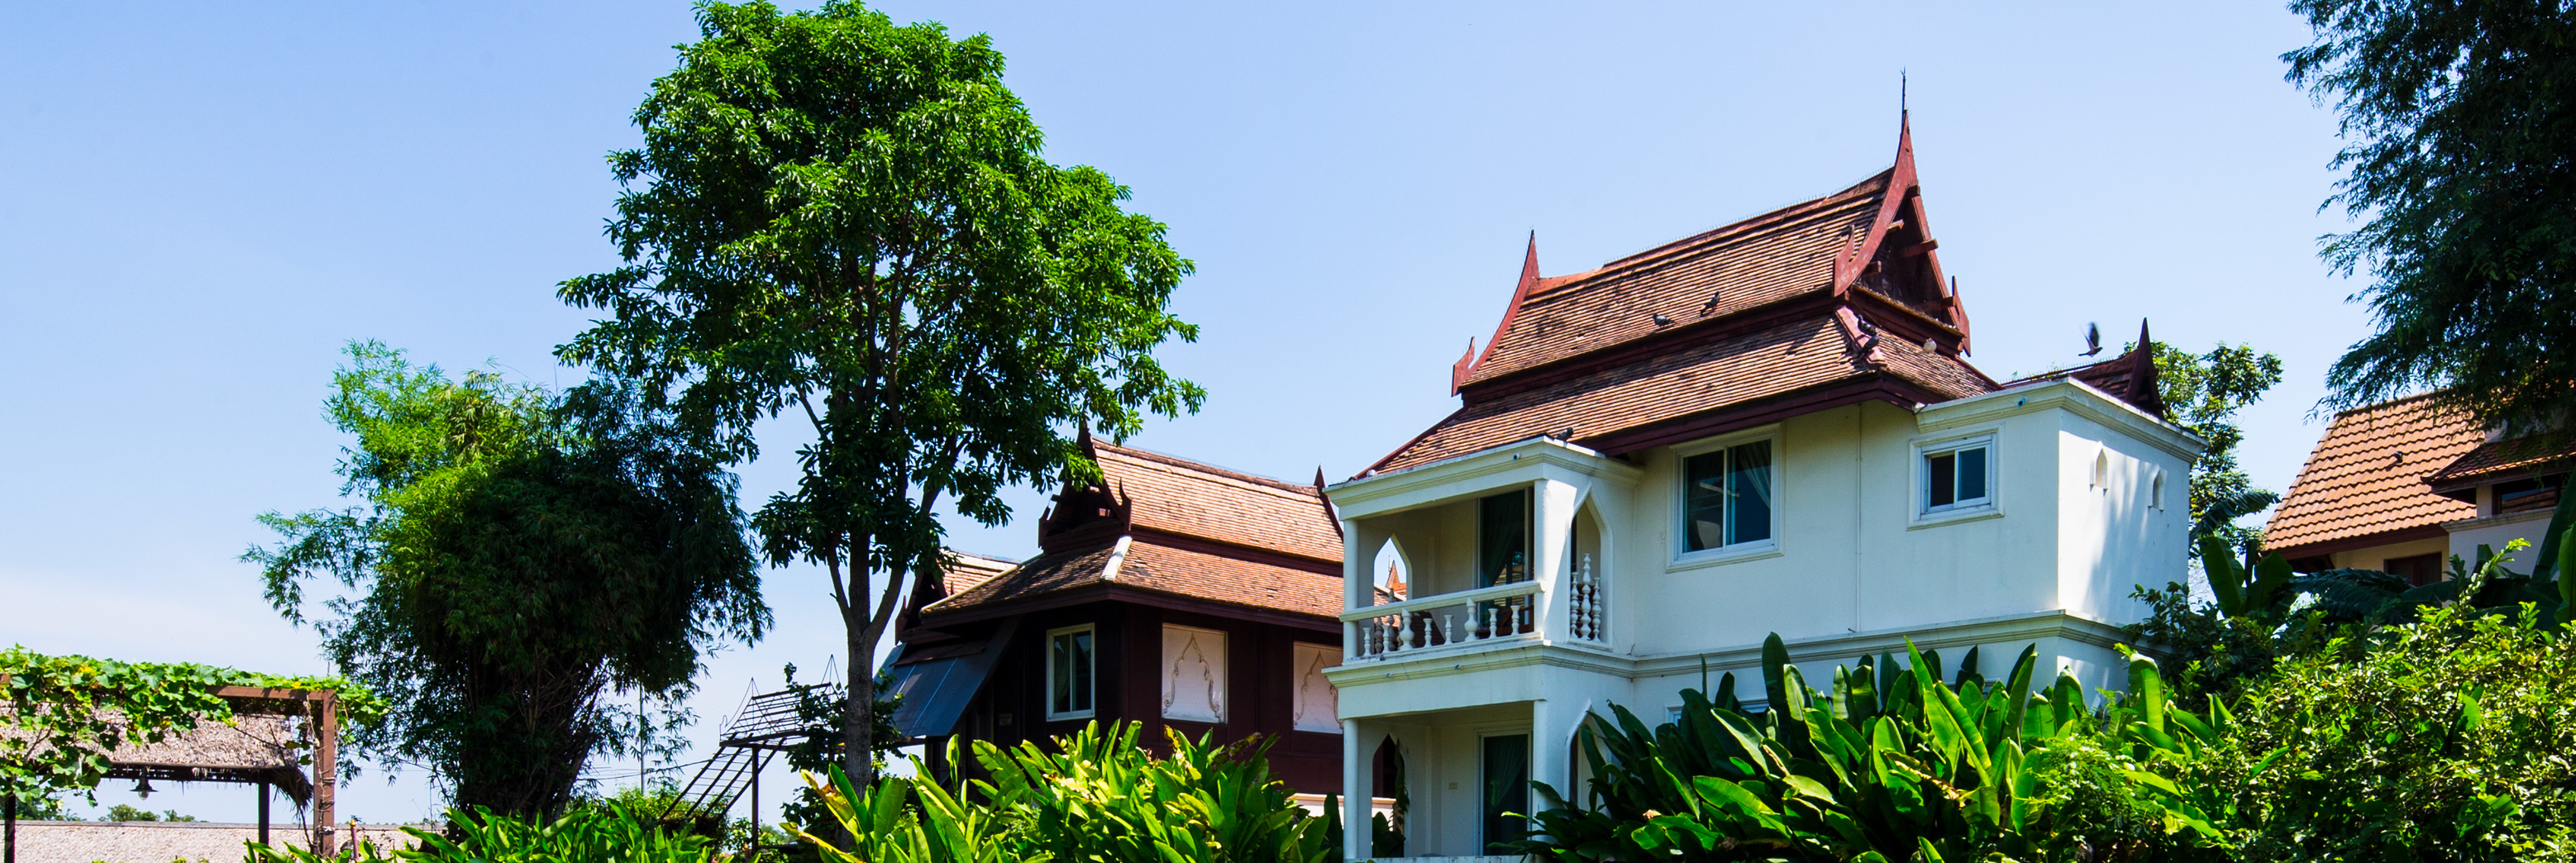 Room for booking, Ayutthaya Garden River Home River Resort Thailand